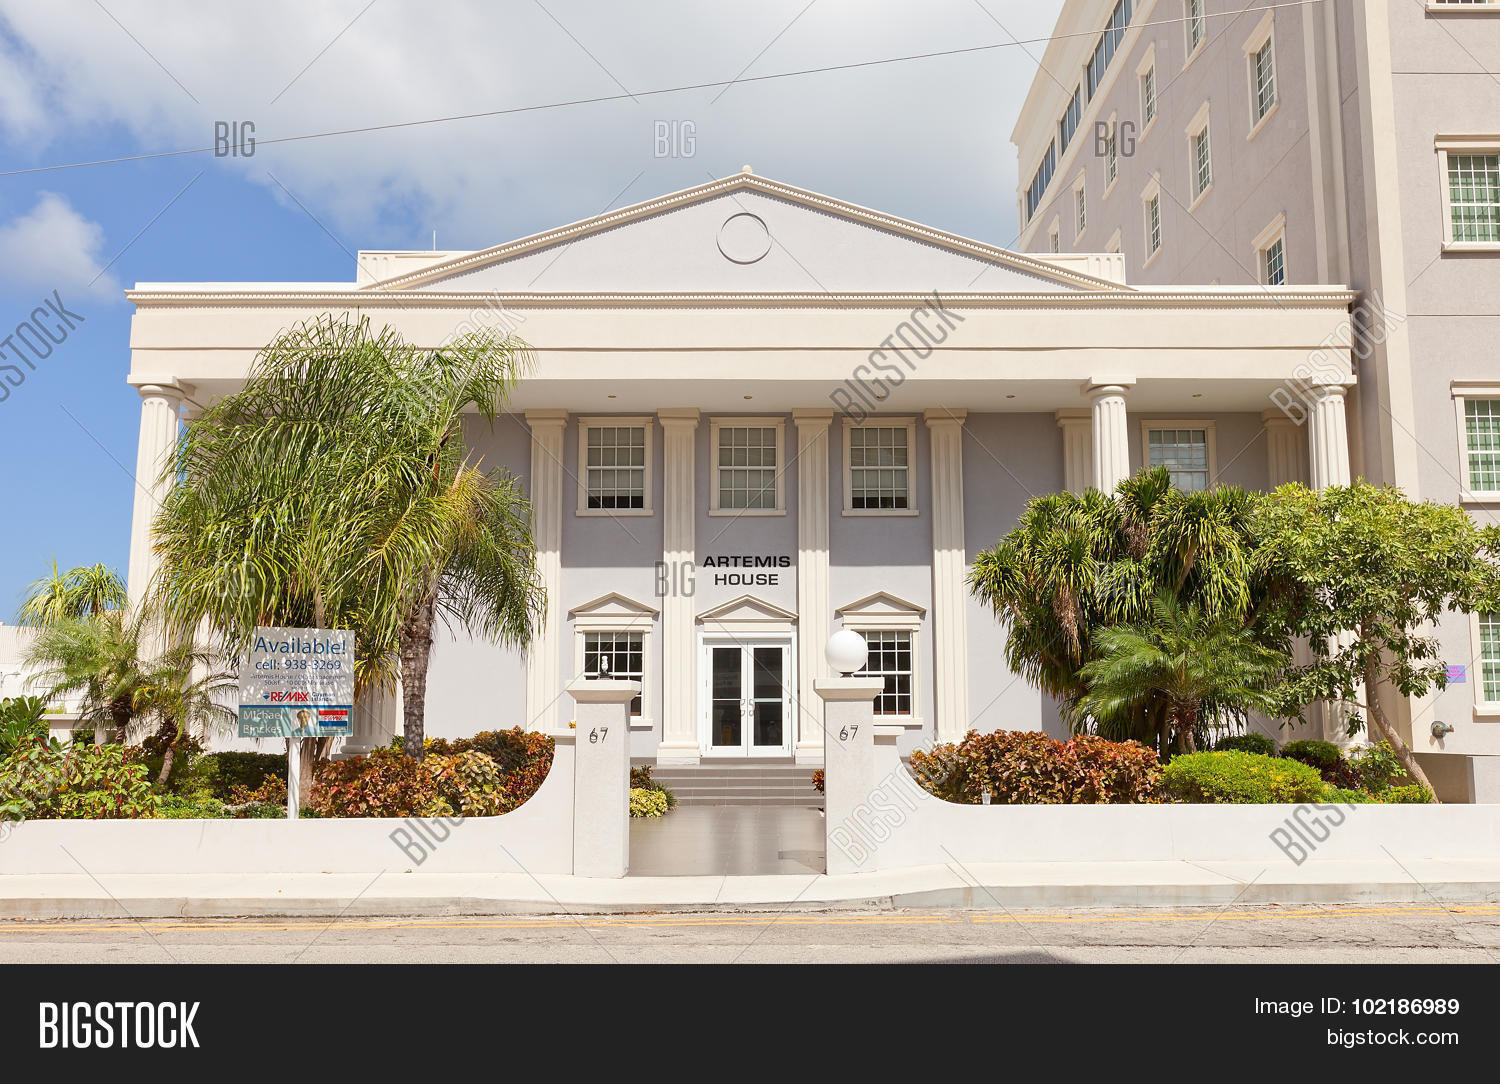 14 with Stock Photo Artemis House In George Town Of Grand Cayman Island on Stock Photo Artemis House In George Town Of Grand Cayman Island moreover There Is There Areaansomeanyhow Muchmany additionally Naomie Olindo likewise Nadia Sawalha Daughters Home Schooled further Dateposted.